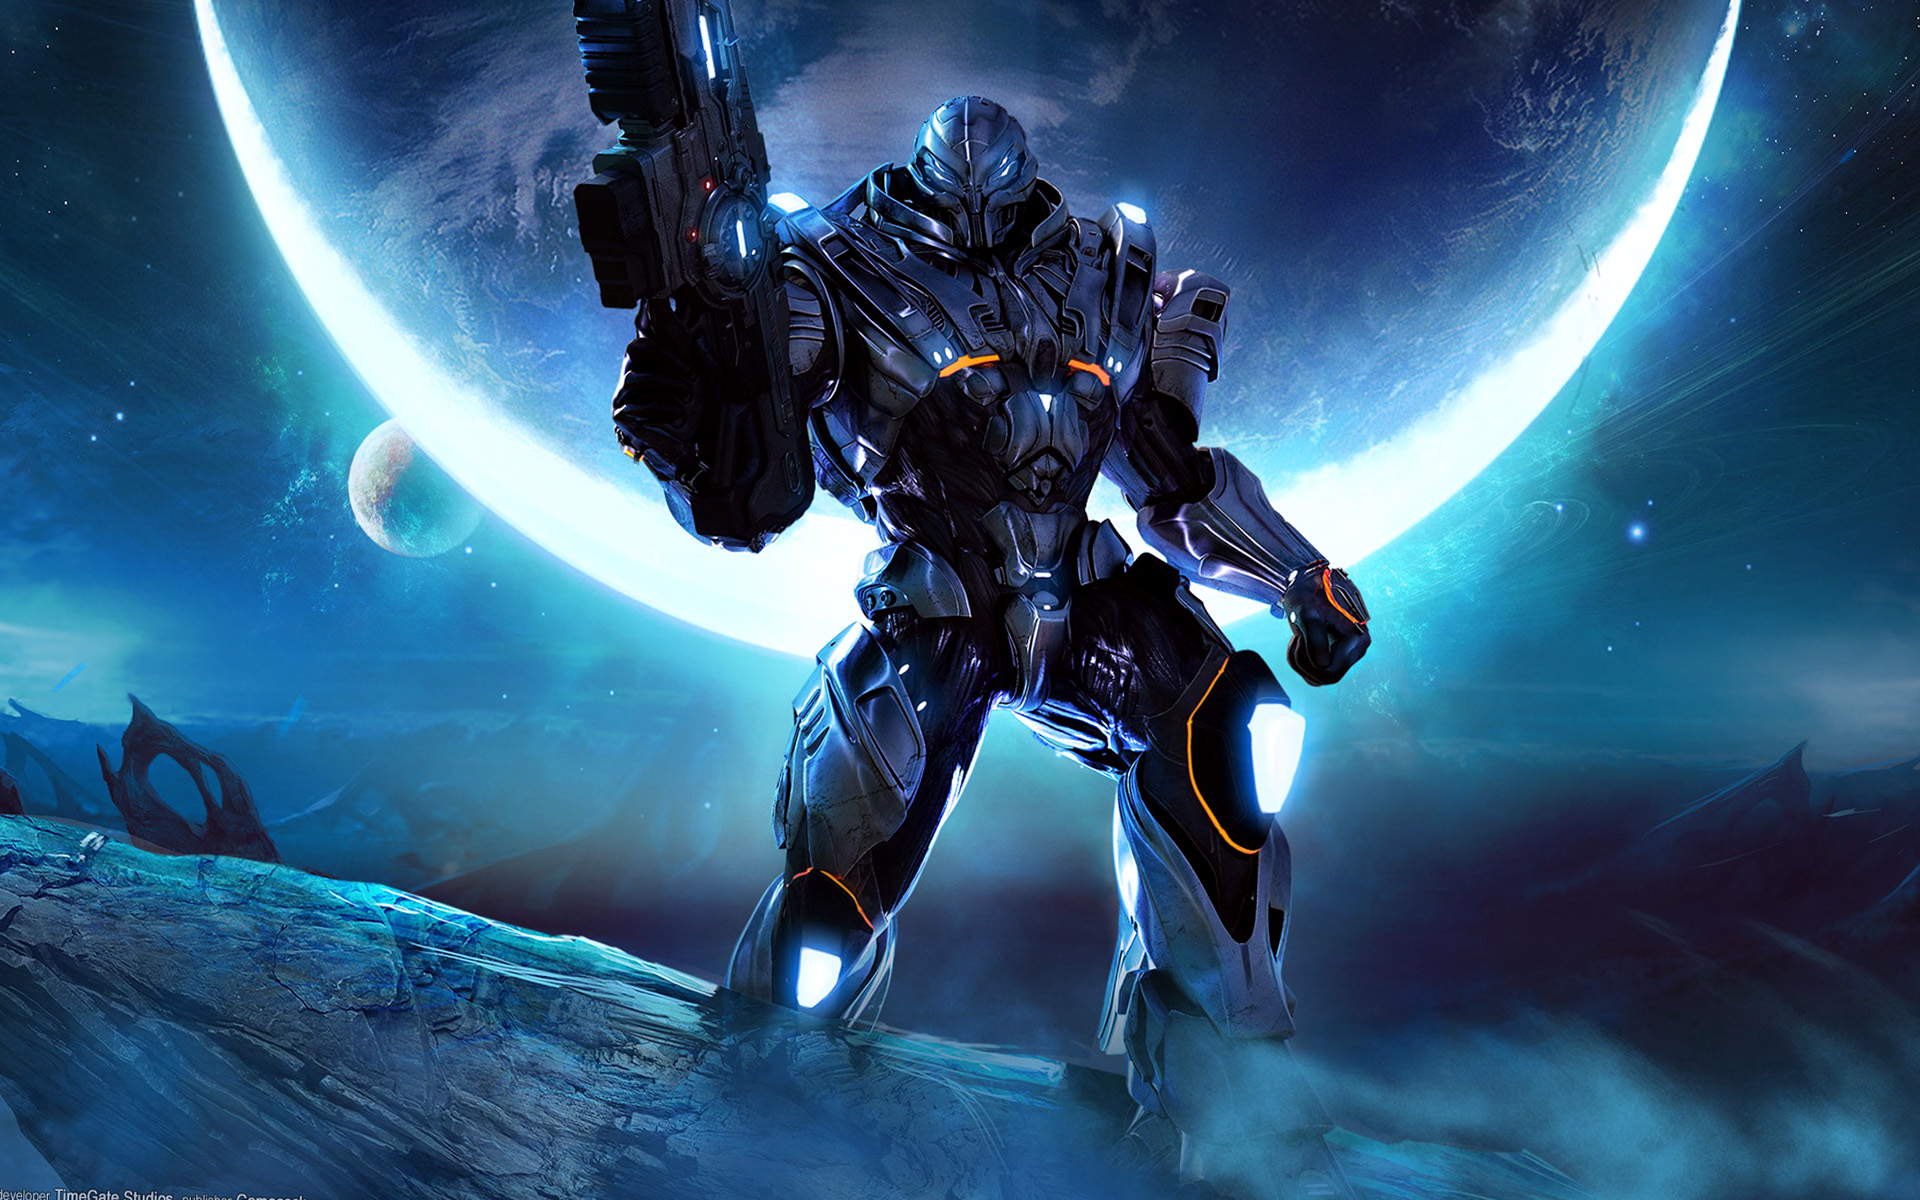 Category Game Wallpapers Cool Game Robot Dektop  1920x1200 px 1920x1200